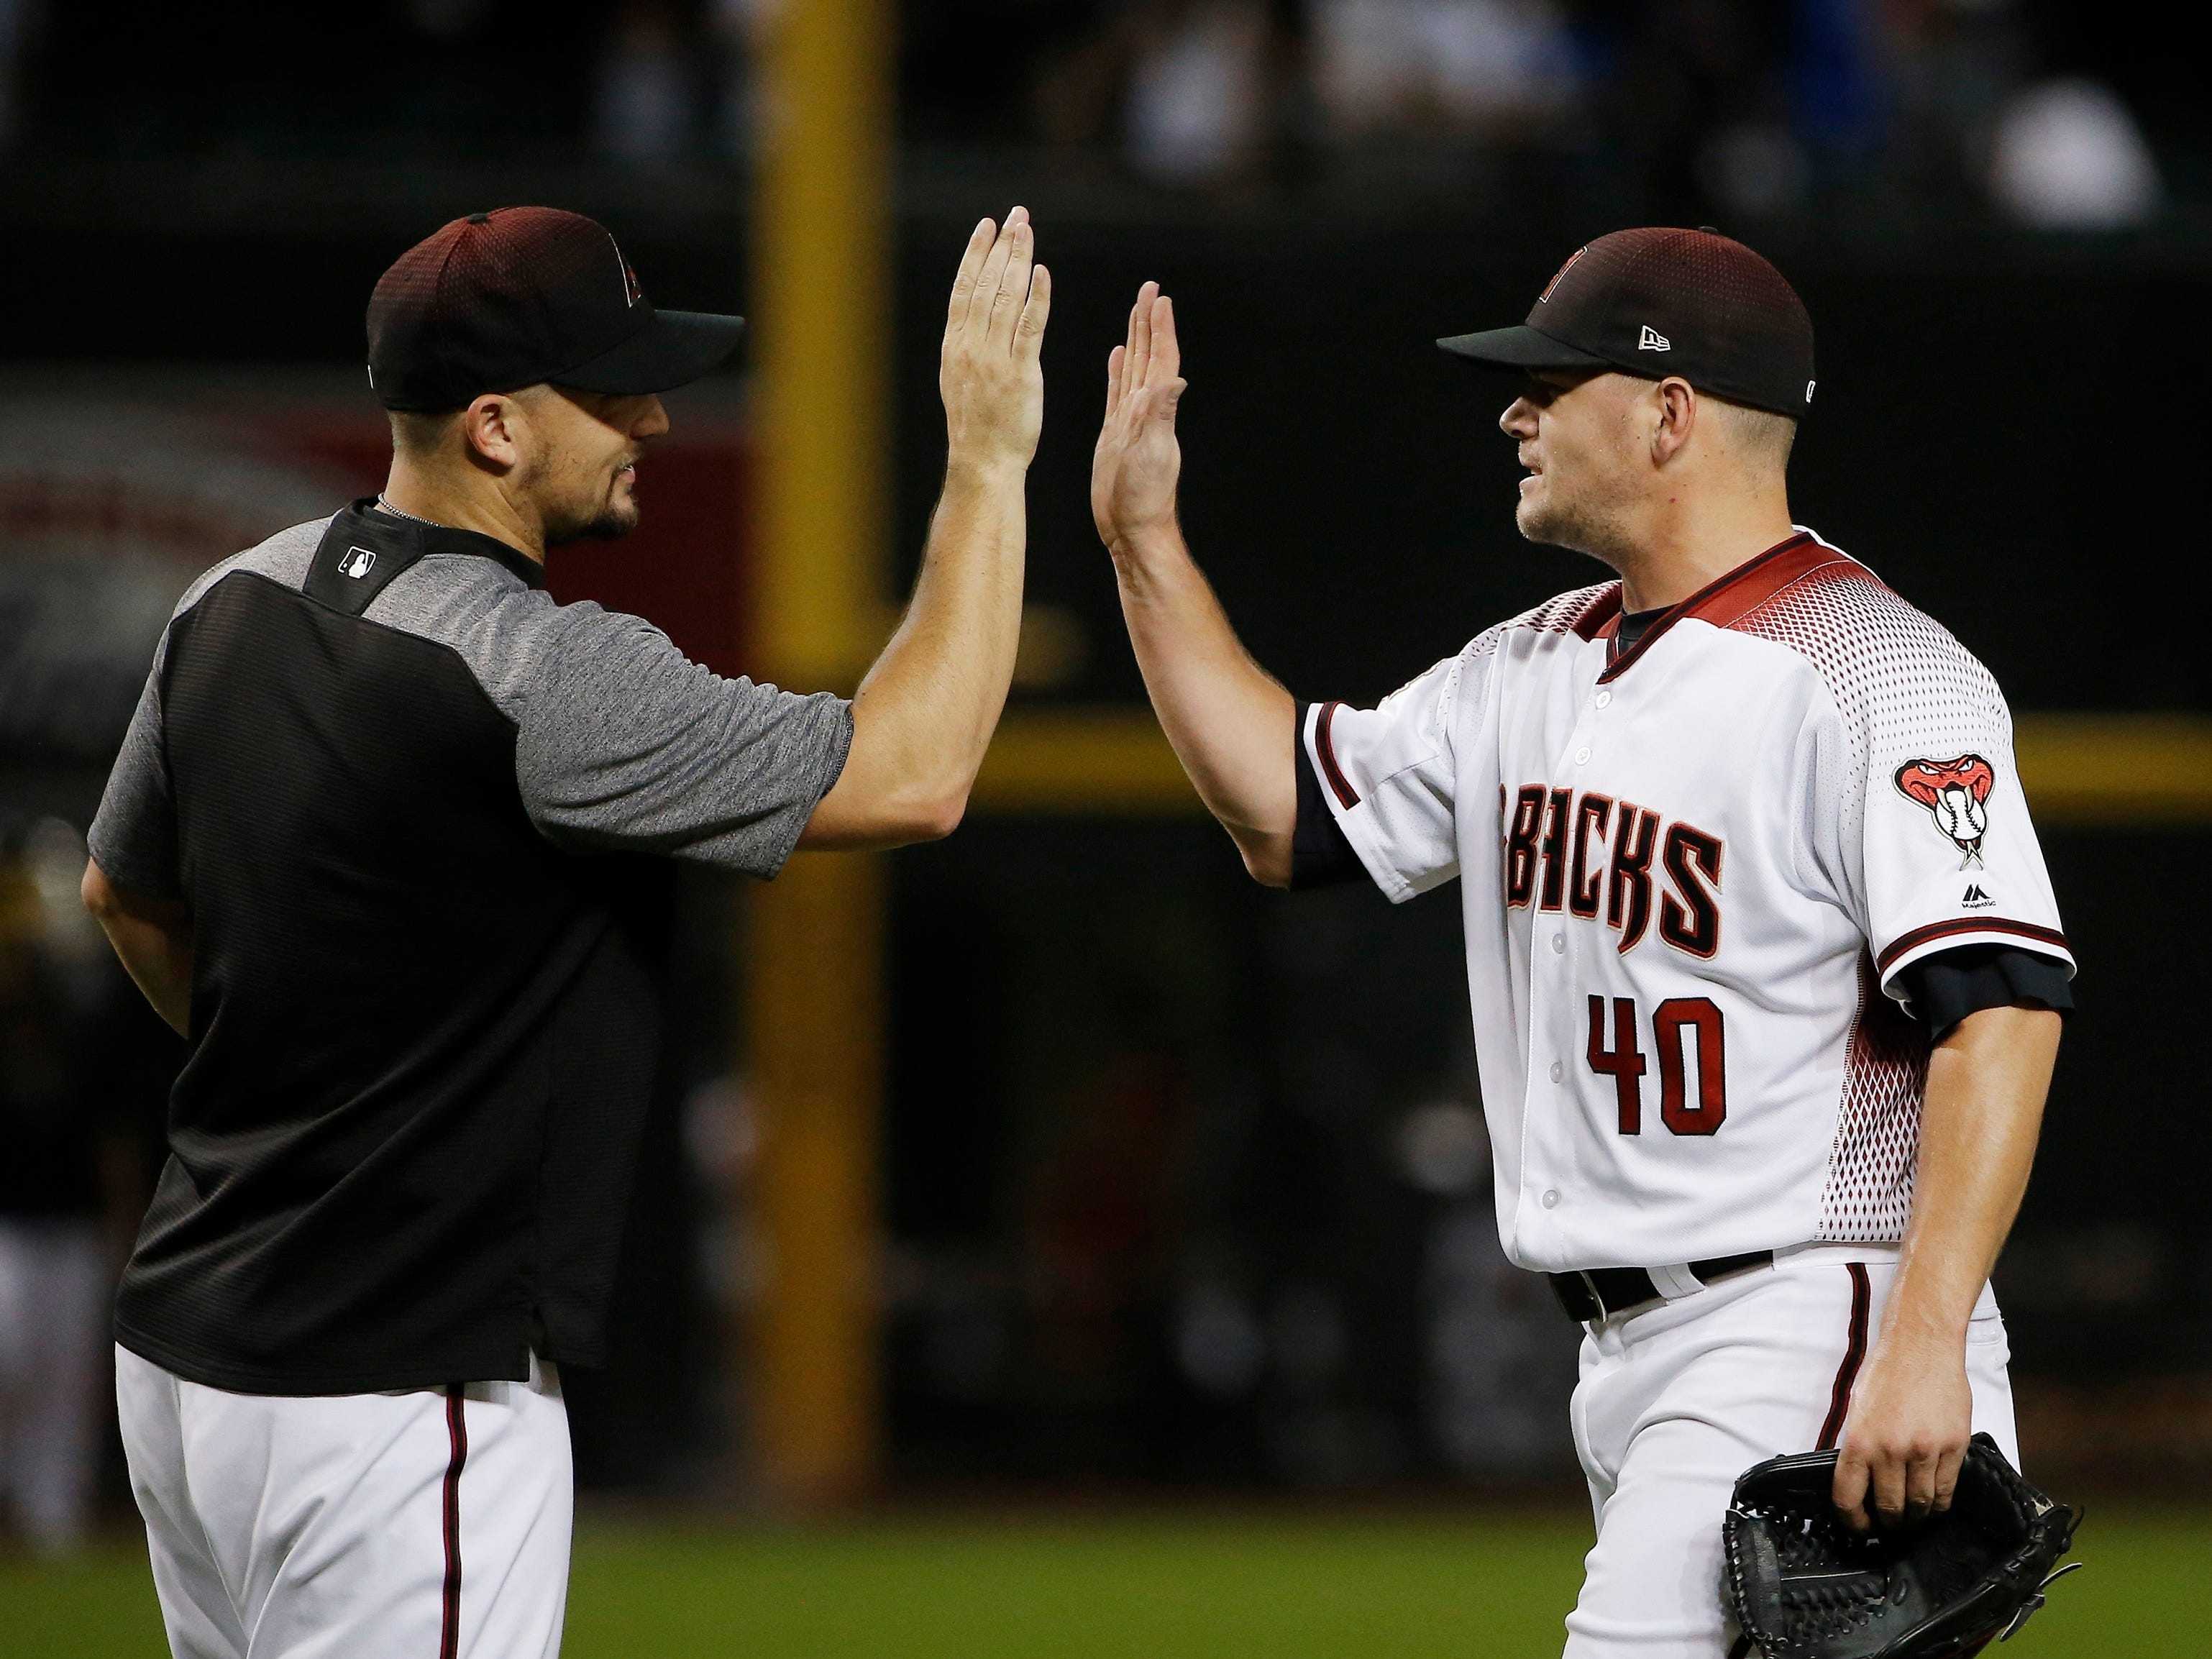 Arizona Diamondbacks relief pitcher Andrew Chafin (40) celebrates with Zack Godley after the final out of a baseball game against the Chicago Cubs on Wednesday, Sept. 19, 2018, in Phoenix. The Diamondbacks defeated the Cubs 9-0. (AP Photo/Ross D. Franklin)